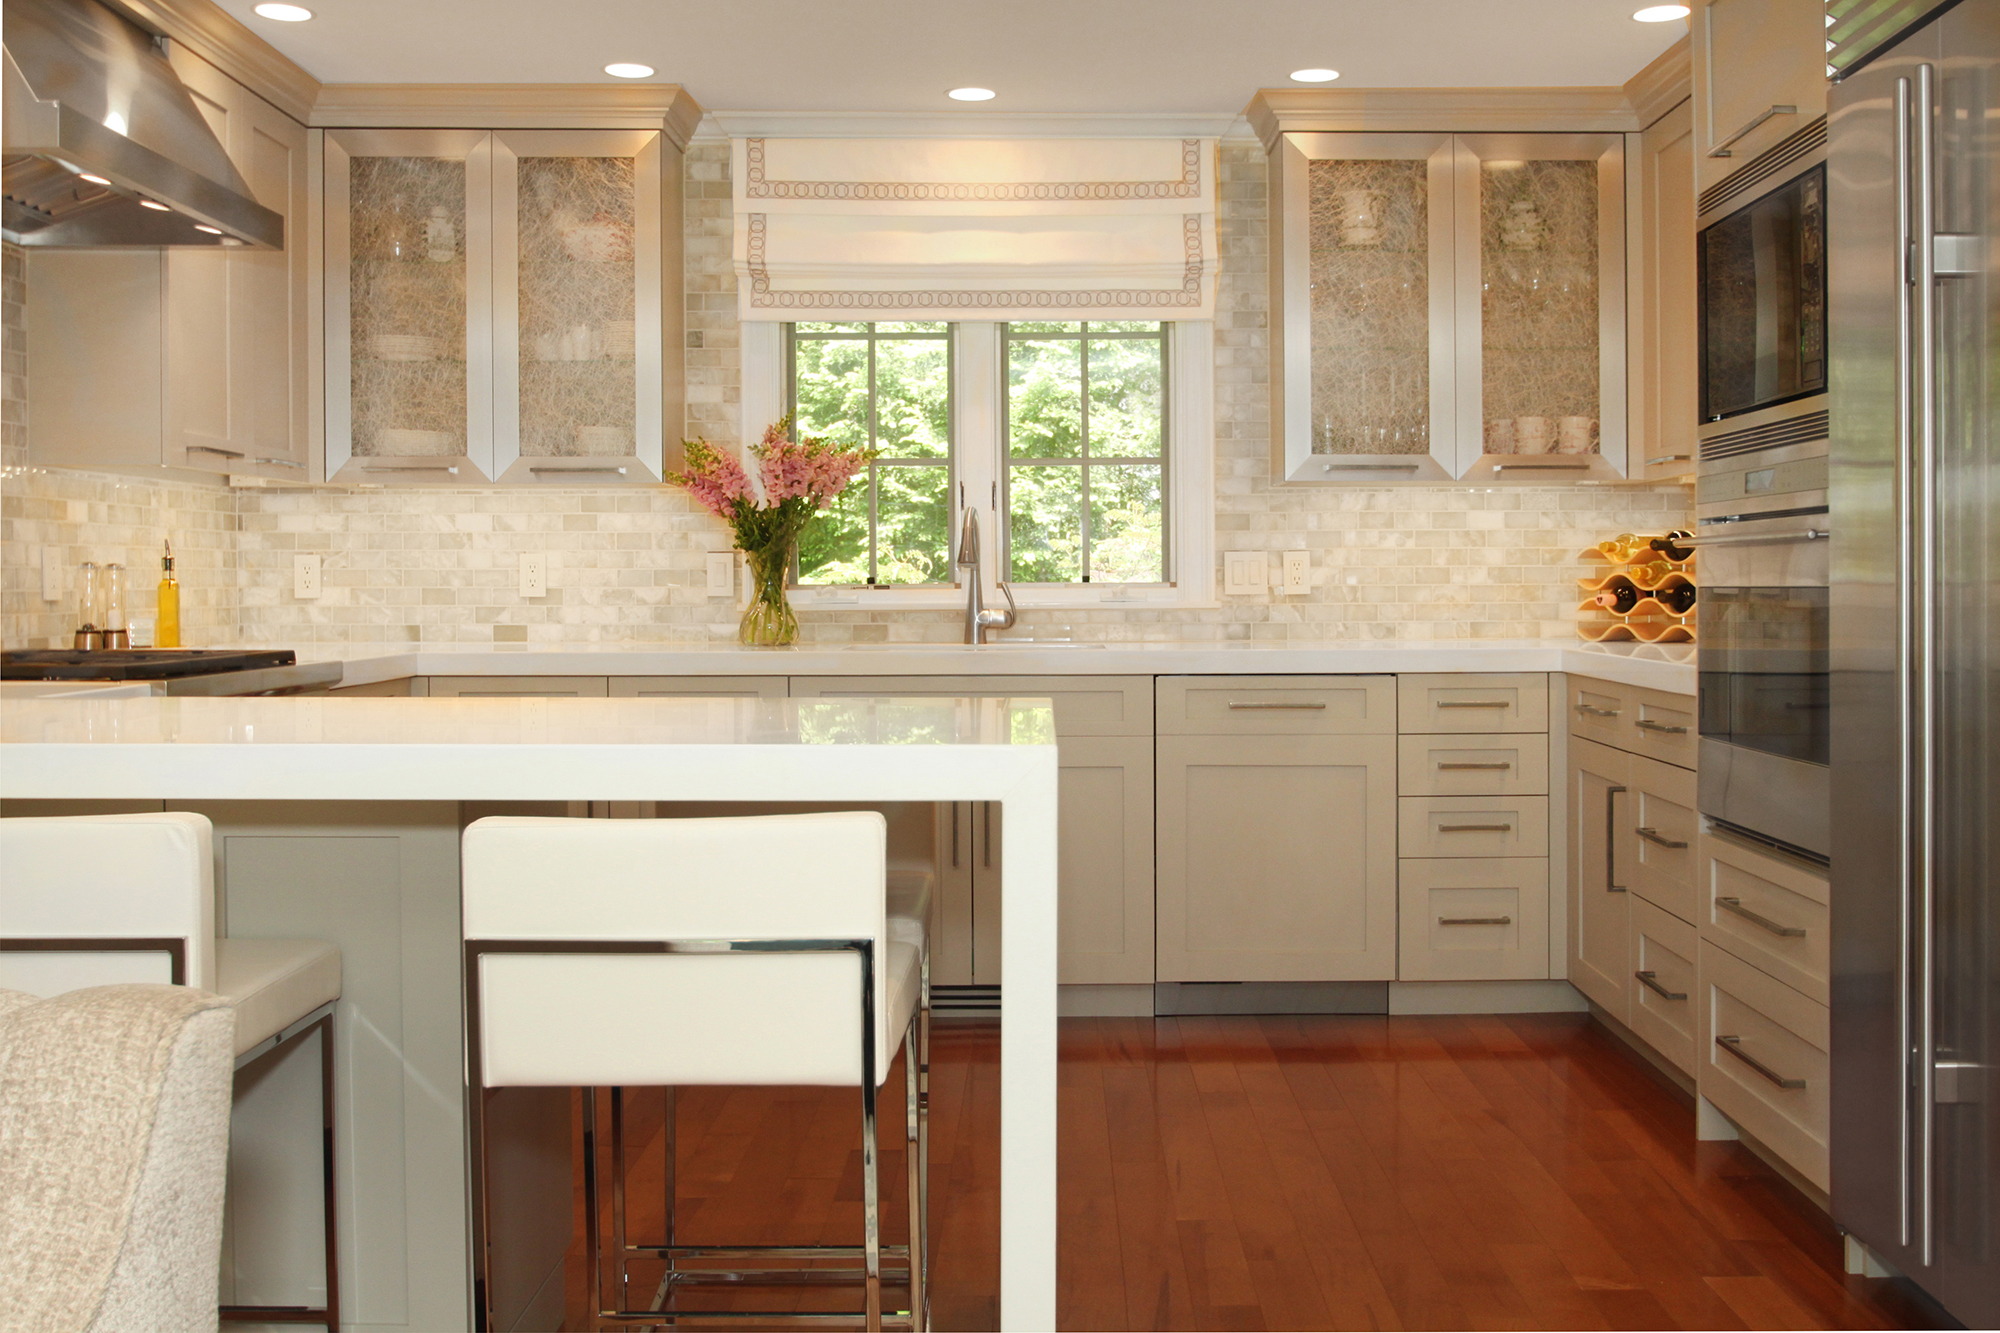 Luxurious kitchen with high-end appliances and custom built cabinets